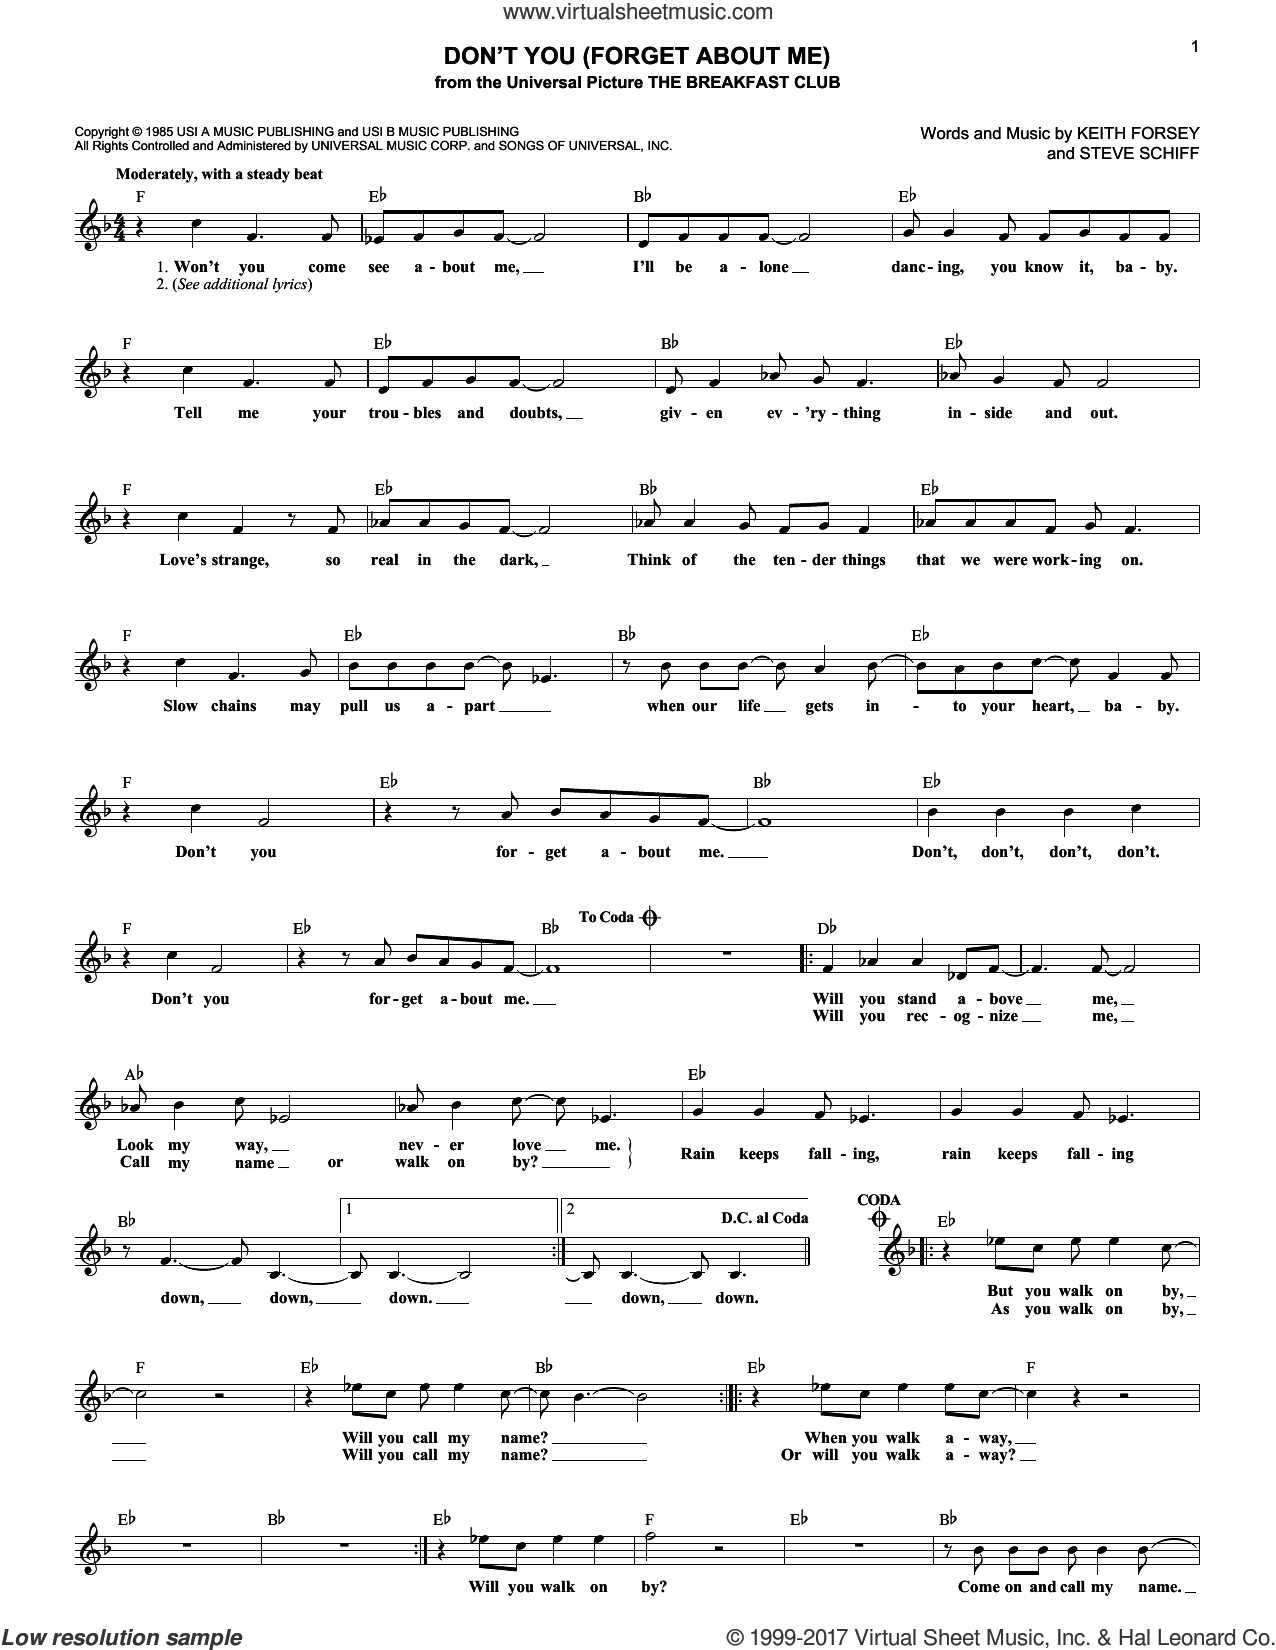 Don't You (Forget About Me) sheet music for voice and other instruments (fake book) by Simple Minds, Keith Forsey and Steve Schiff, intermediate